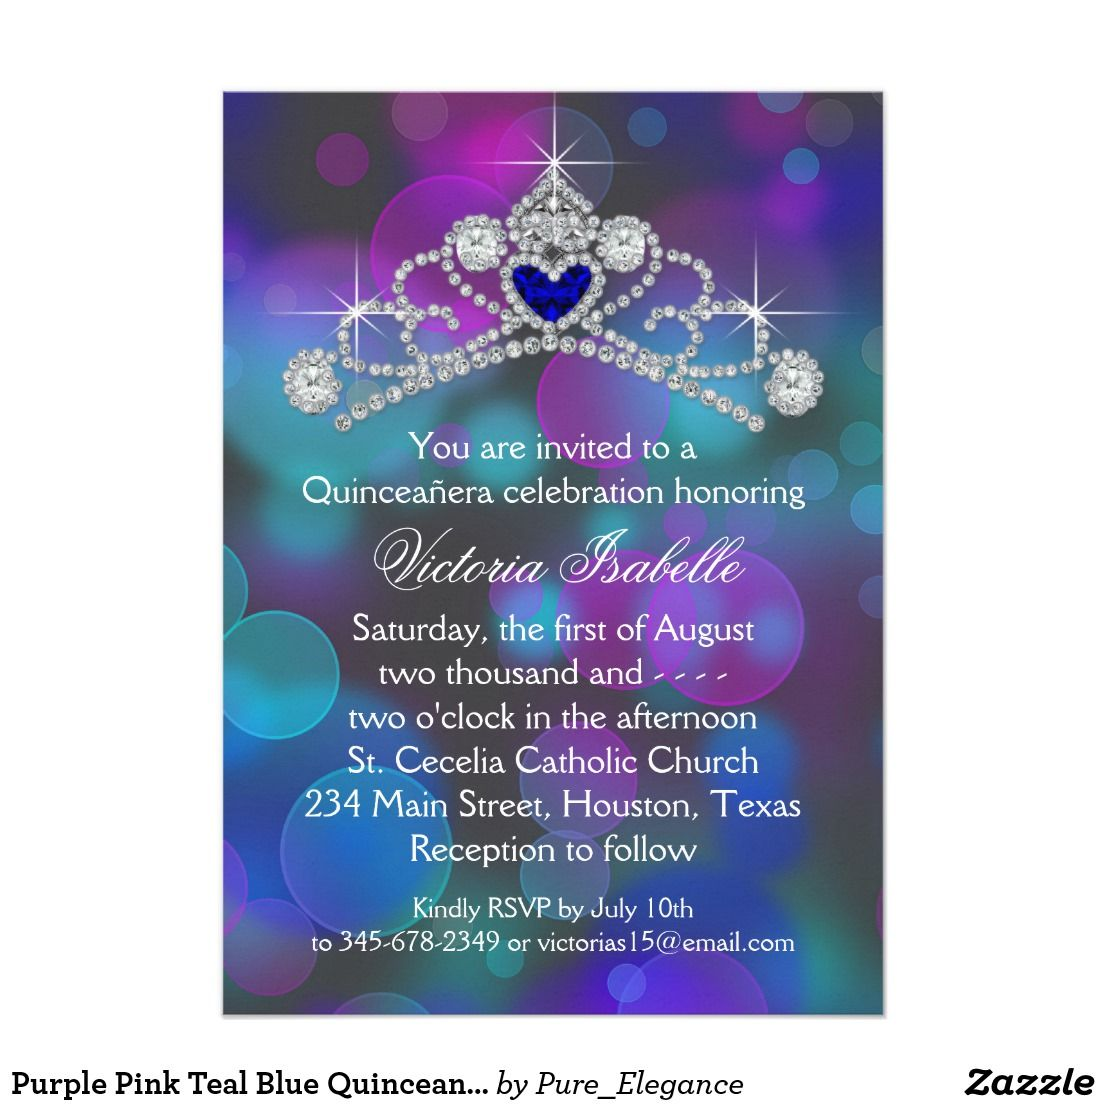 purple pink teal blue quinceanera card - Royal Blue Quinceanera Invitations